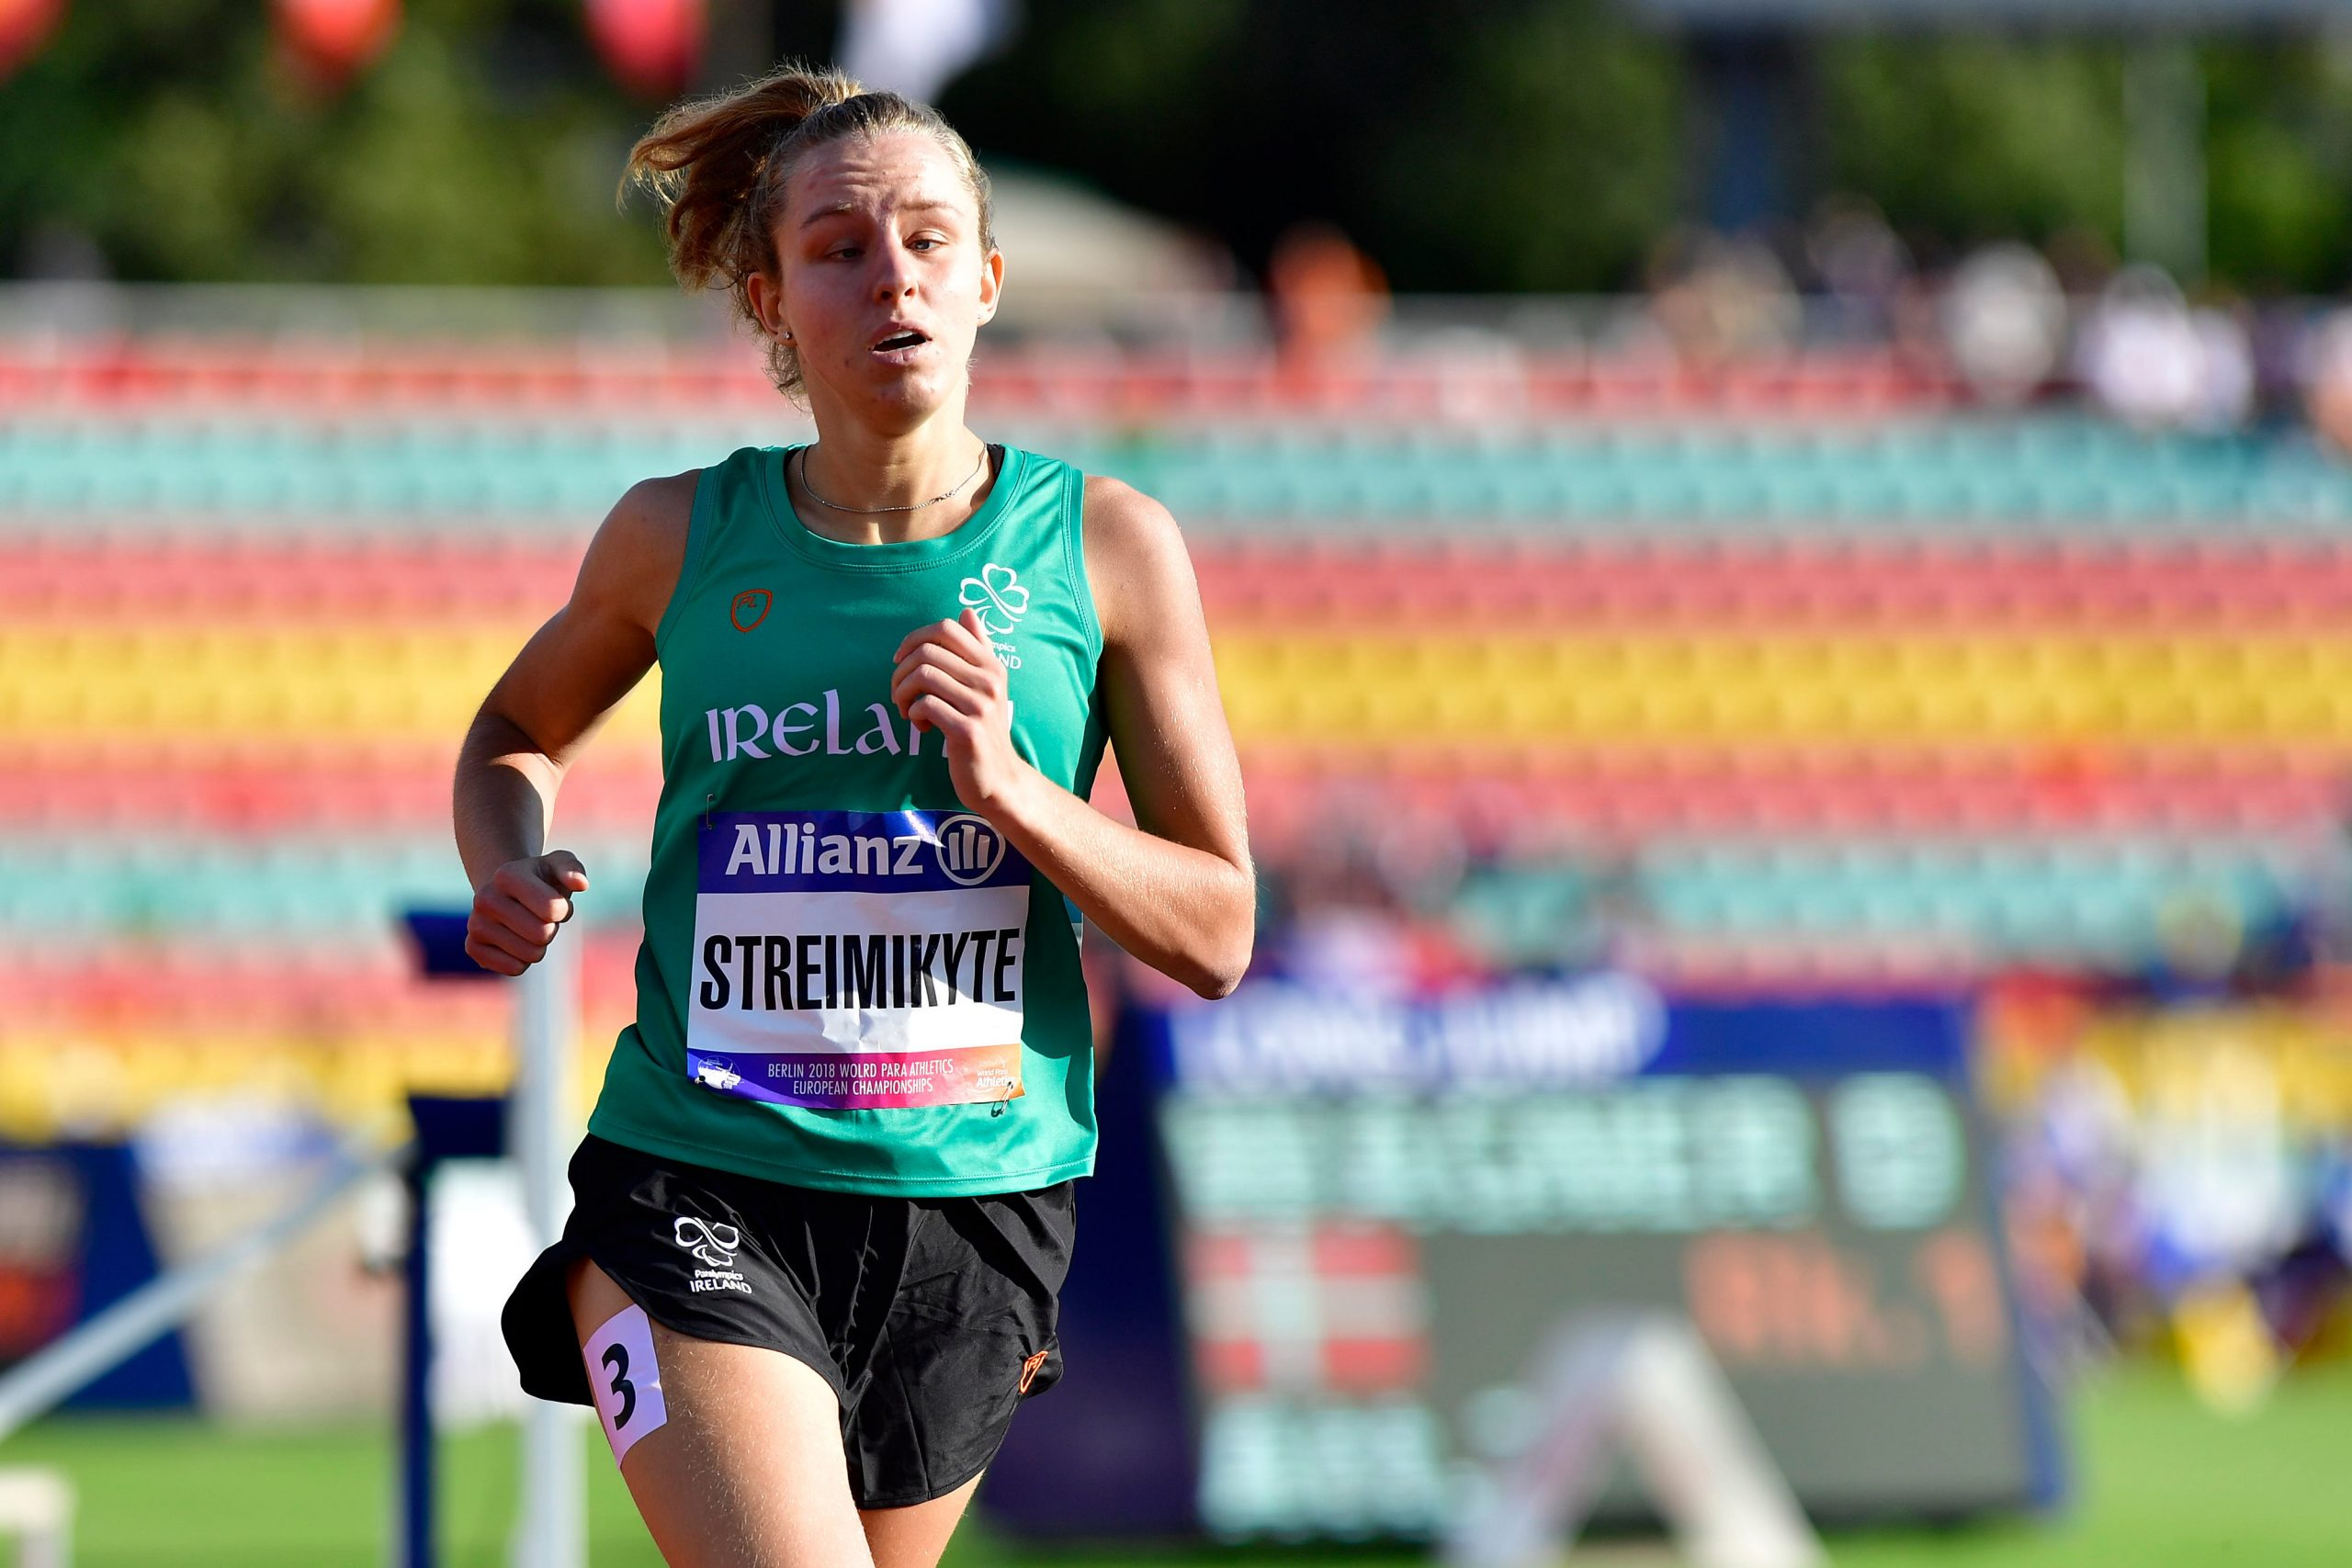 21 August 2018; Greta Streimikyte of Ireland on her way to winning gold in the Women's T13 1500m's during the 2018 World Para Athletics European Championships at Friedrich-Ludwig-Jahn-Sportpark in Berlin, Germany. Photo by Luc Percival/Sportsfile *** NO REPRODUCTION FEE ***